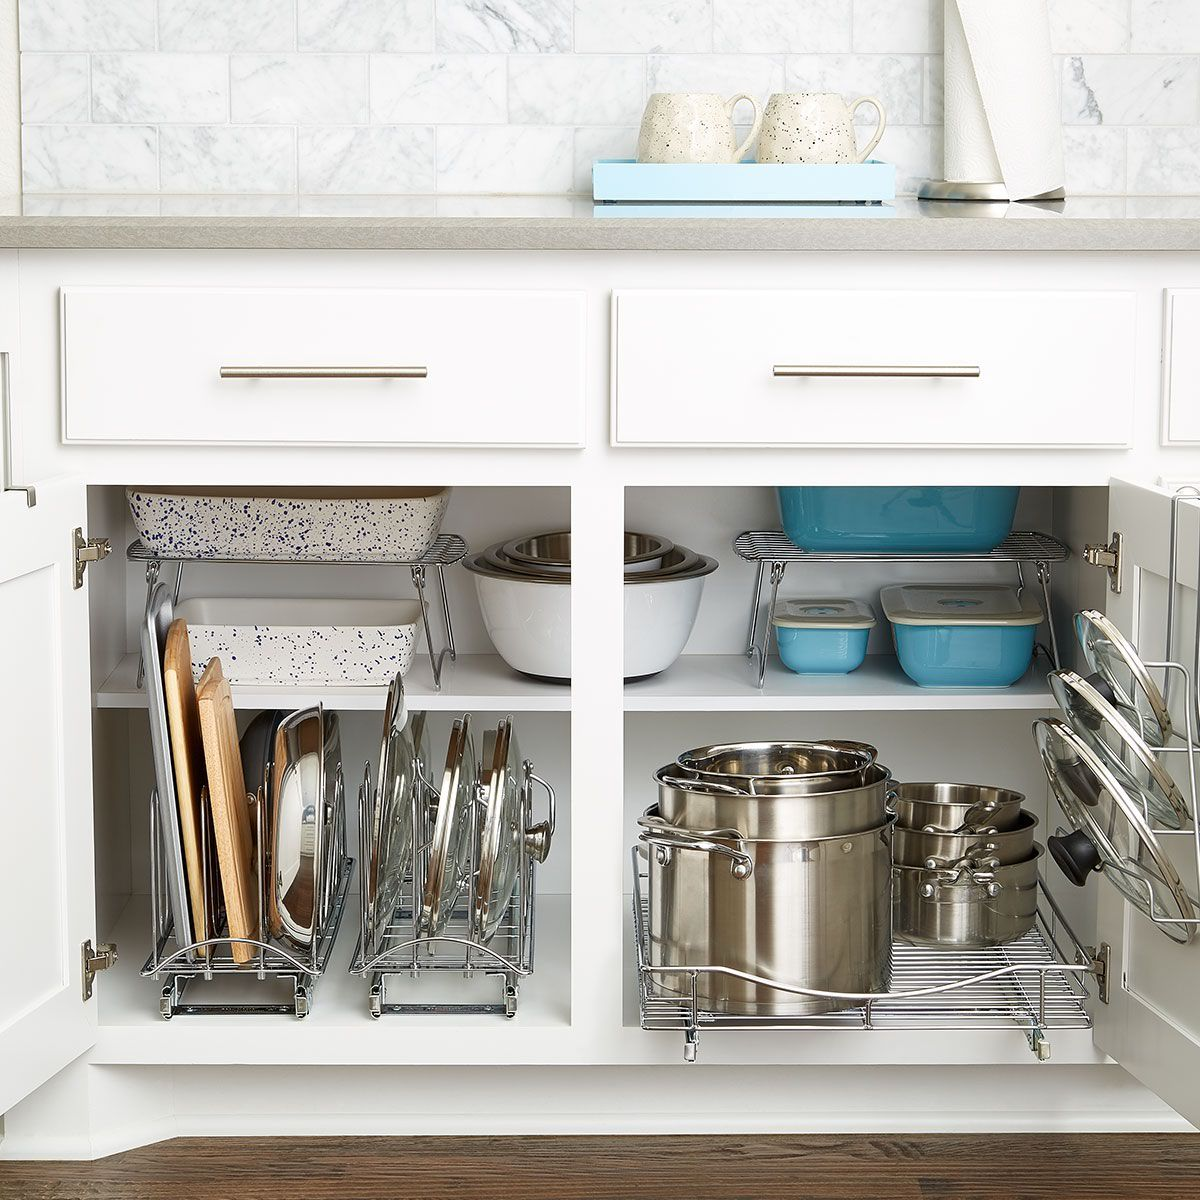 When It Comes To Lower Cabinet Organization In Your Kitchen Look For Products That Are Specifical Kitchen Drawers Kitchen Organization Diy Diy Kitchen Storage